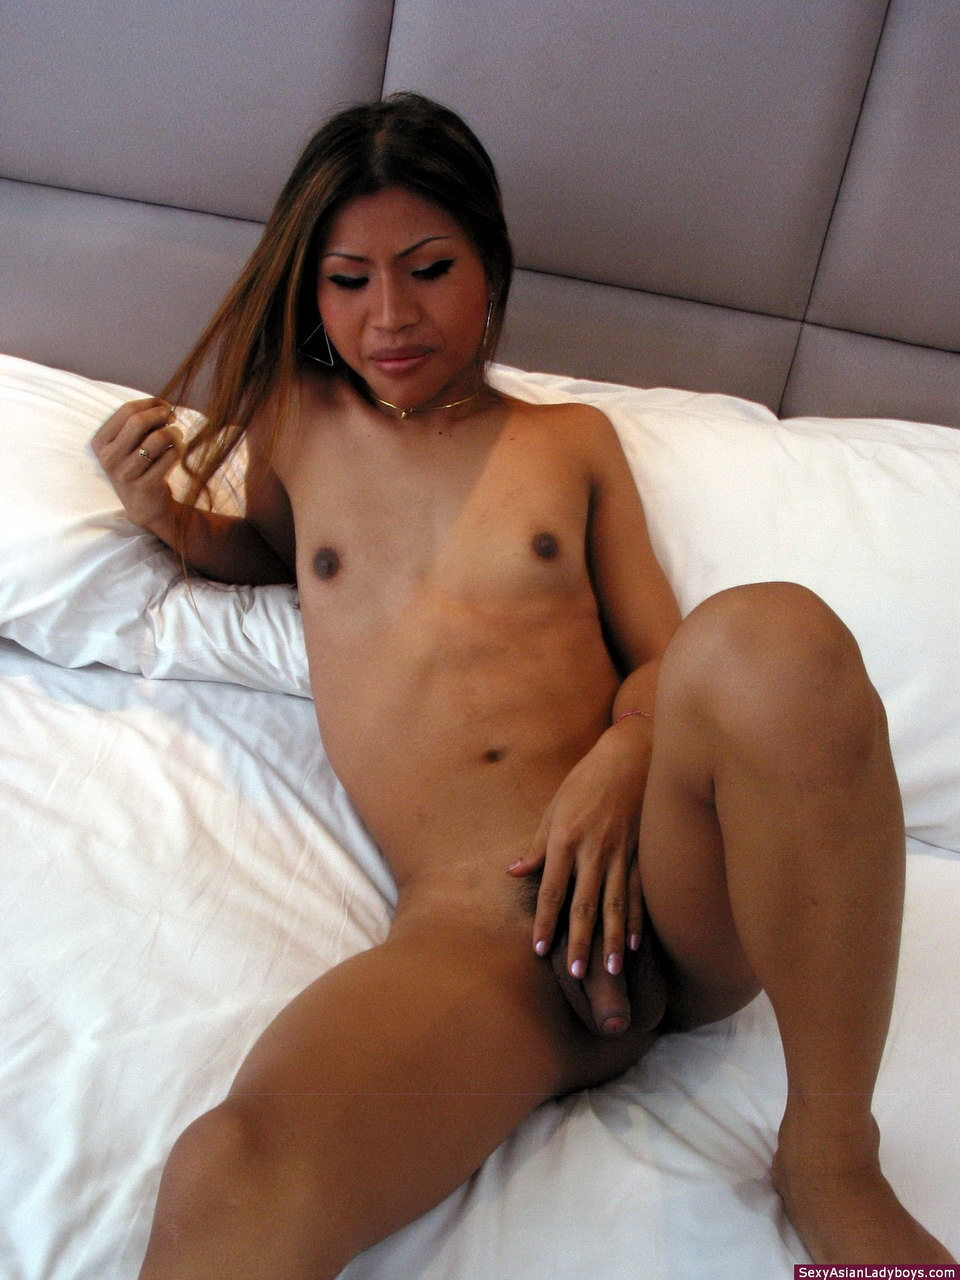 This Tall Cutie Strips On Her Bed And Plays With Her Raw Penis